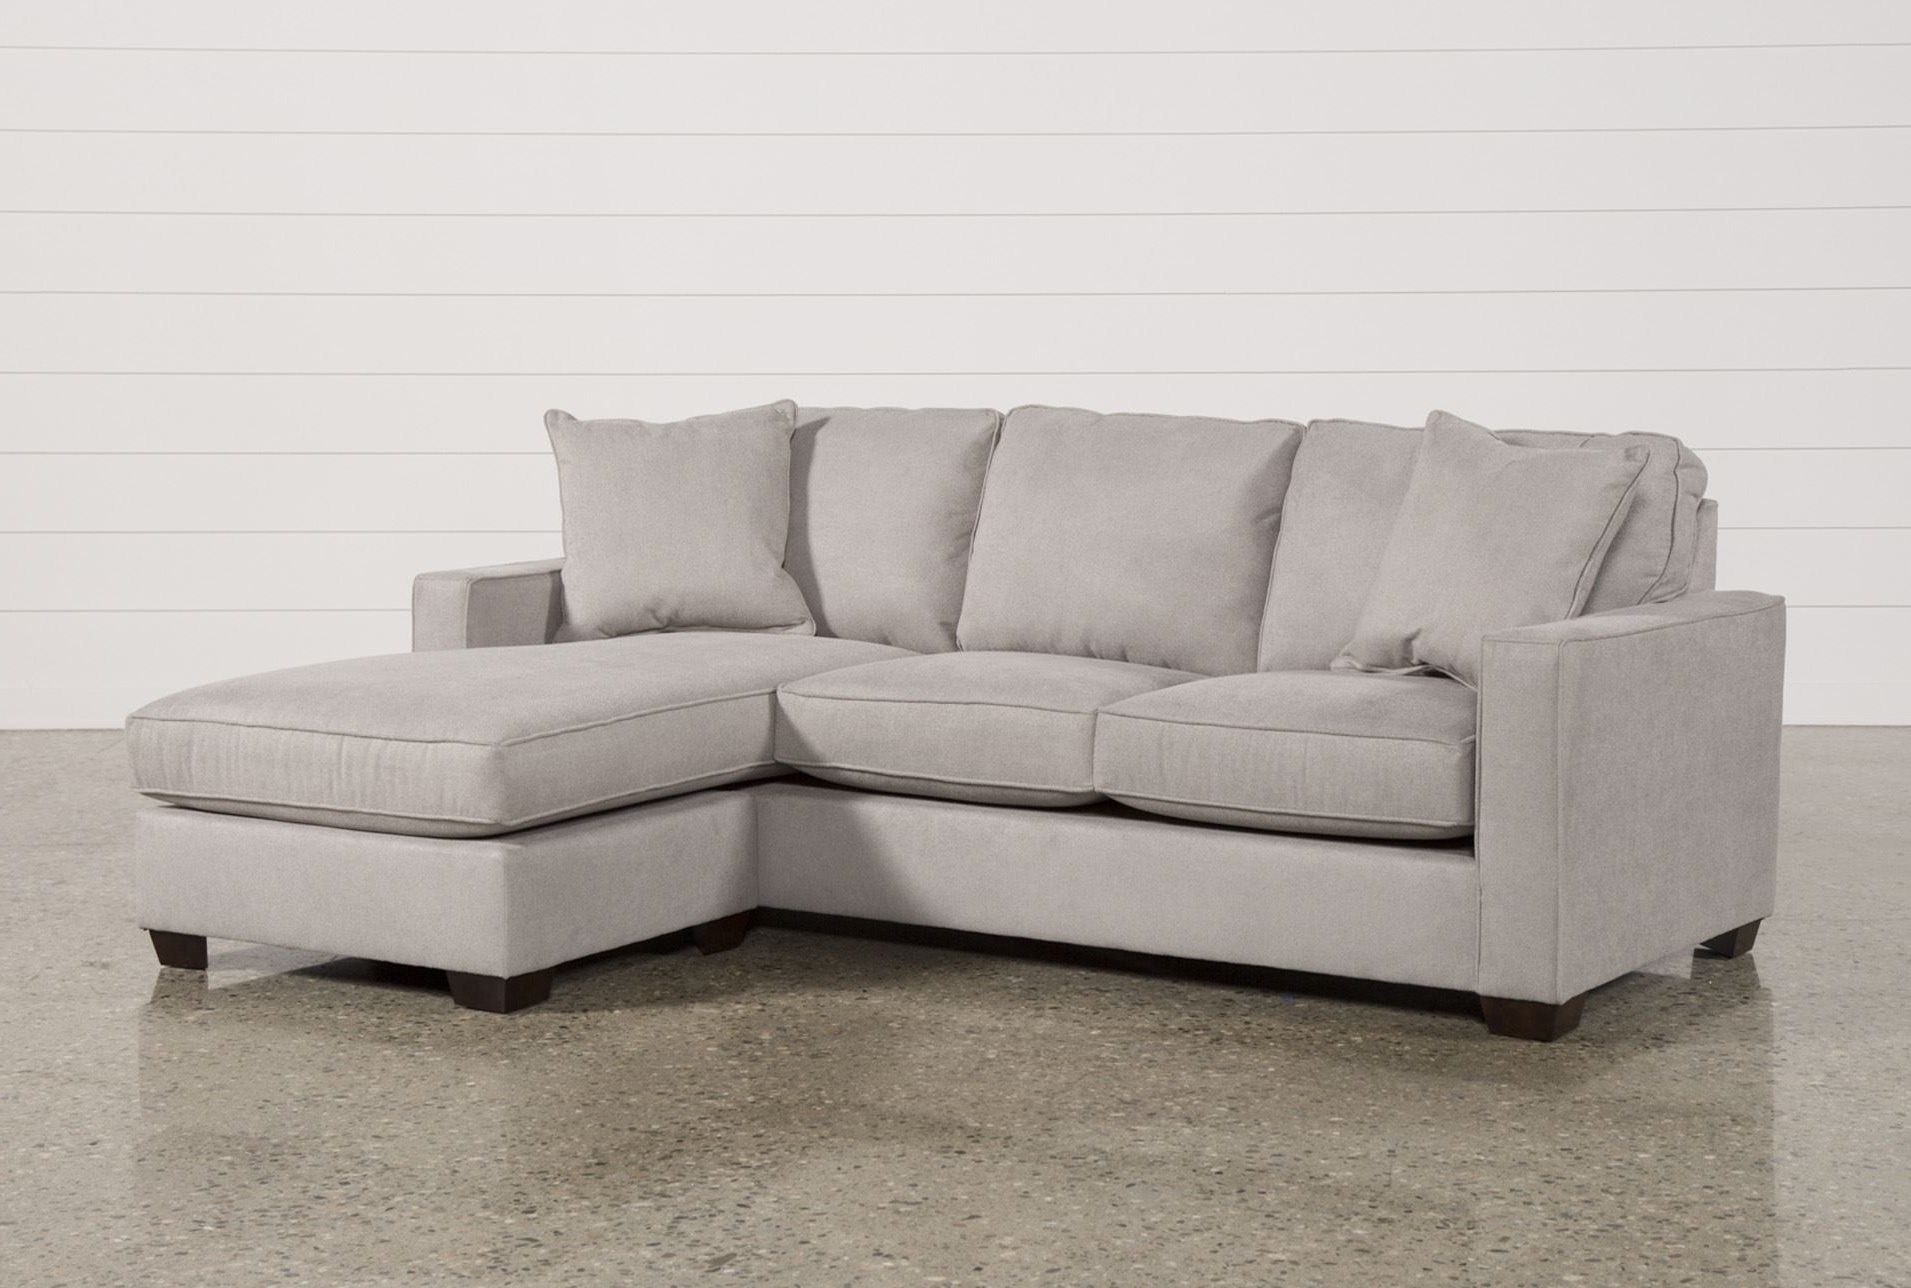 Favorite New Deep Seat Sectional Sofa 17 On Soft Sectional Sofas With Deep Pertaining To Living Spaces Sectional Sofas (View 4 of 15)